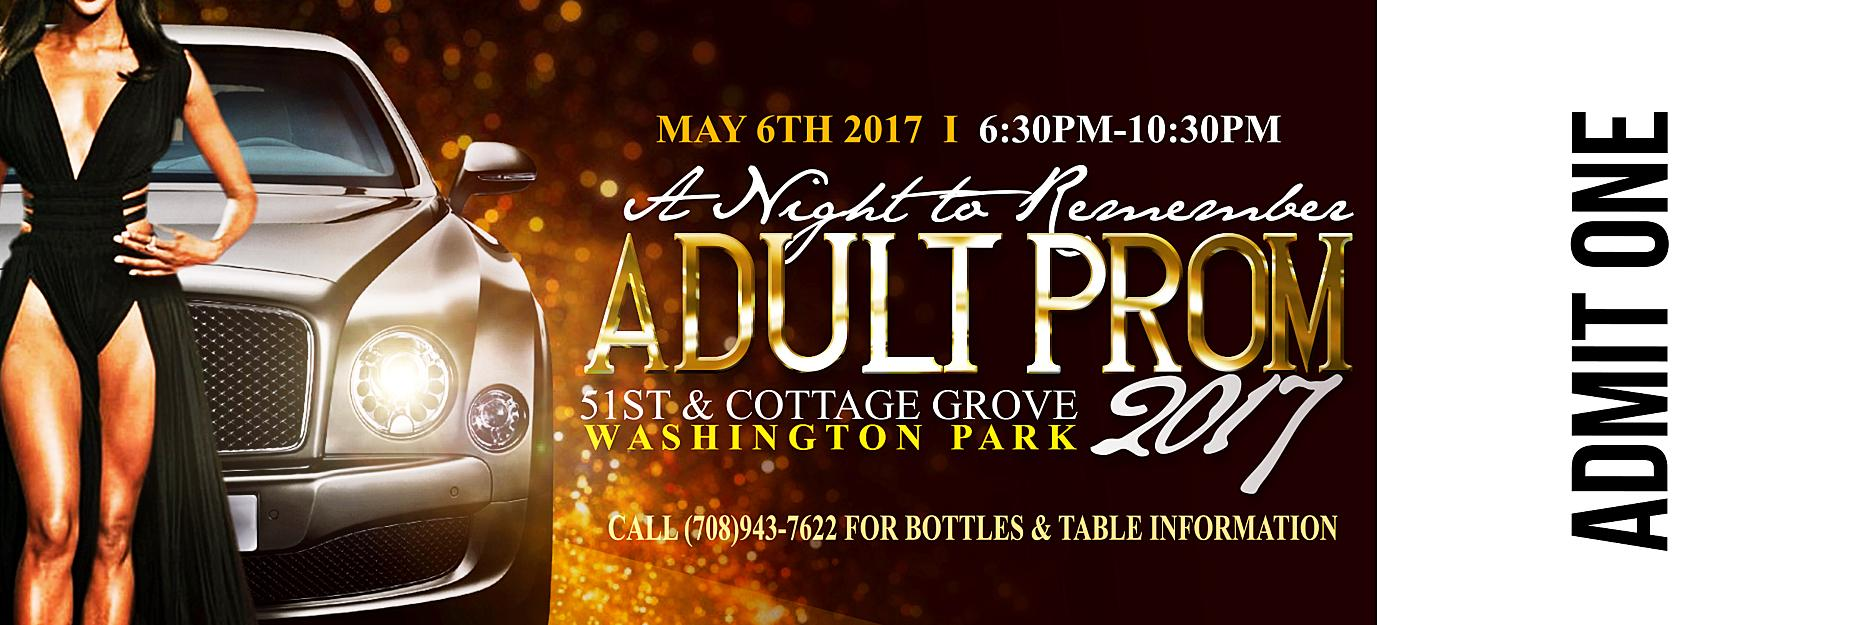 """A Night To Remember"" 2017 Adult Prom"